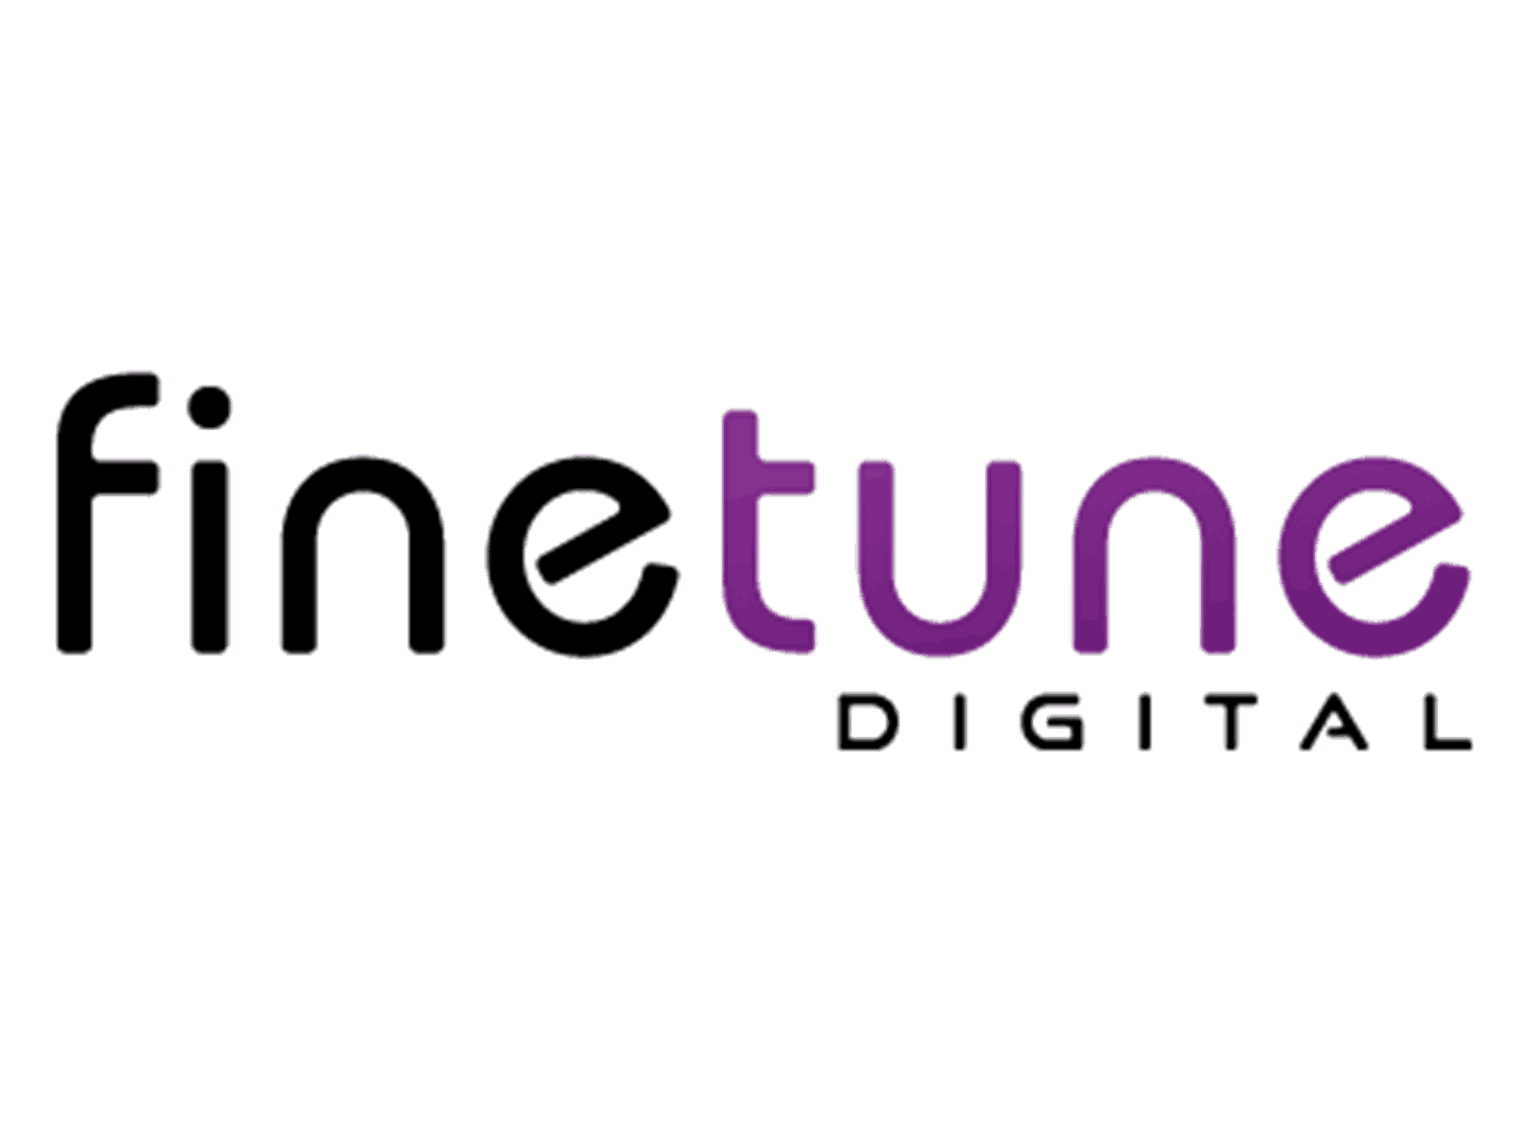 Finetune Digital